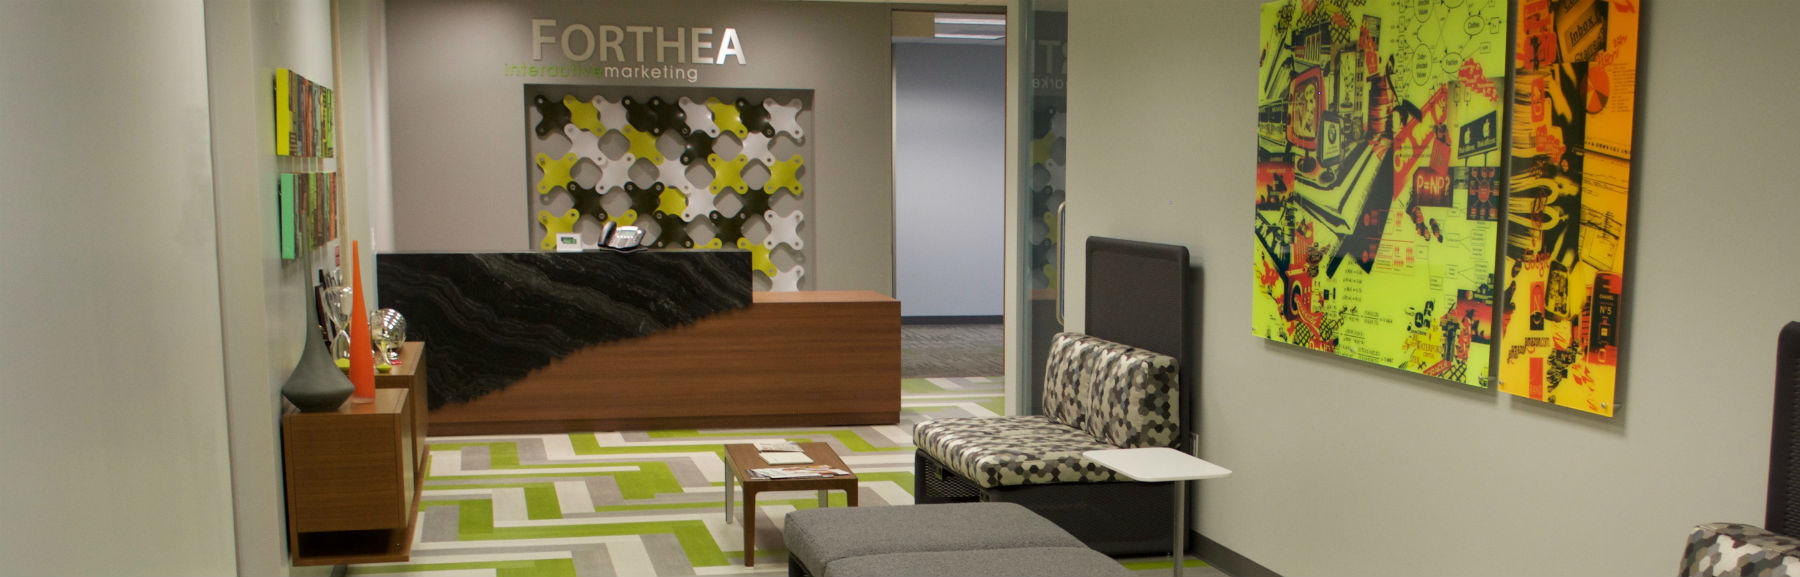 Forthea-New-Lobby3